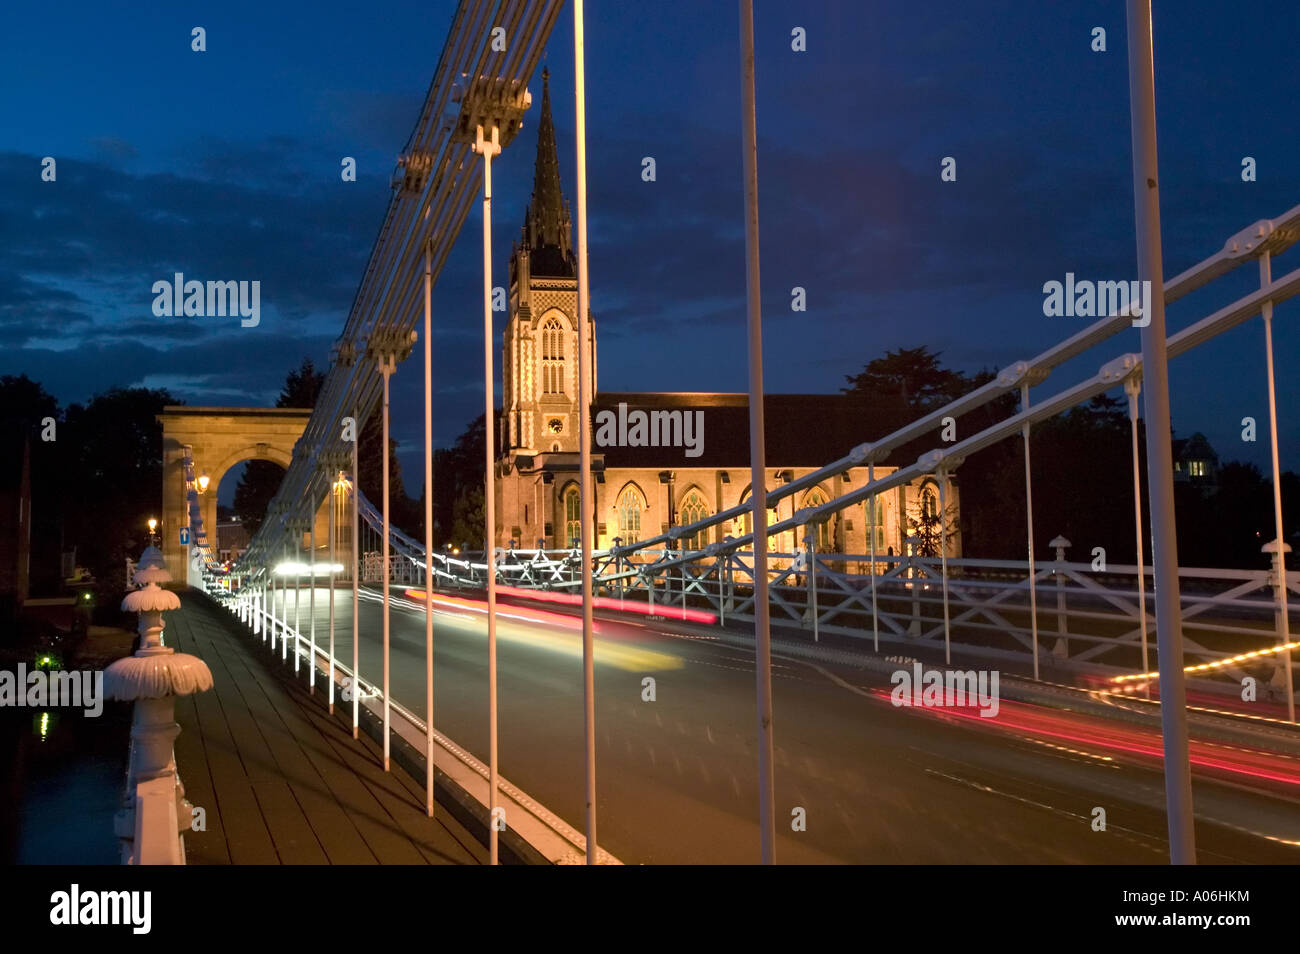 The bridge and All Saints church lit up at night in Marlow - Stock Image